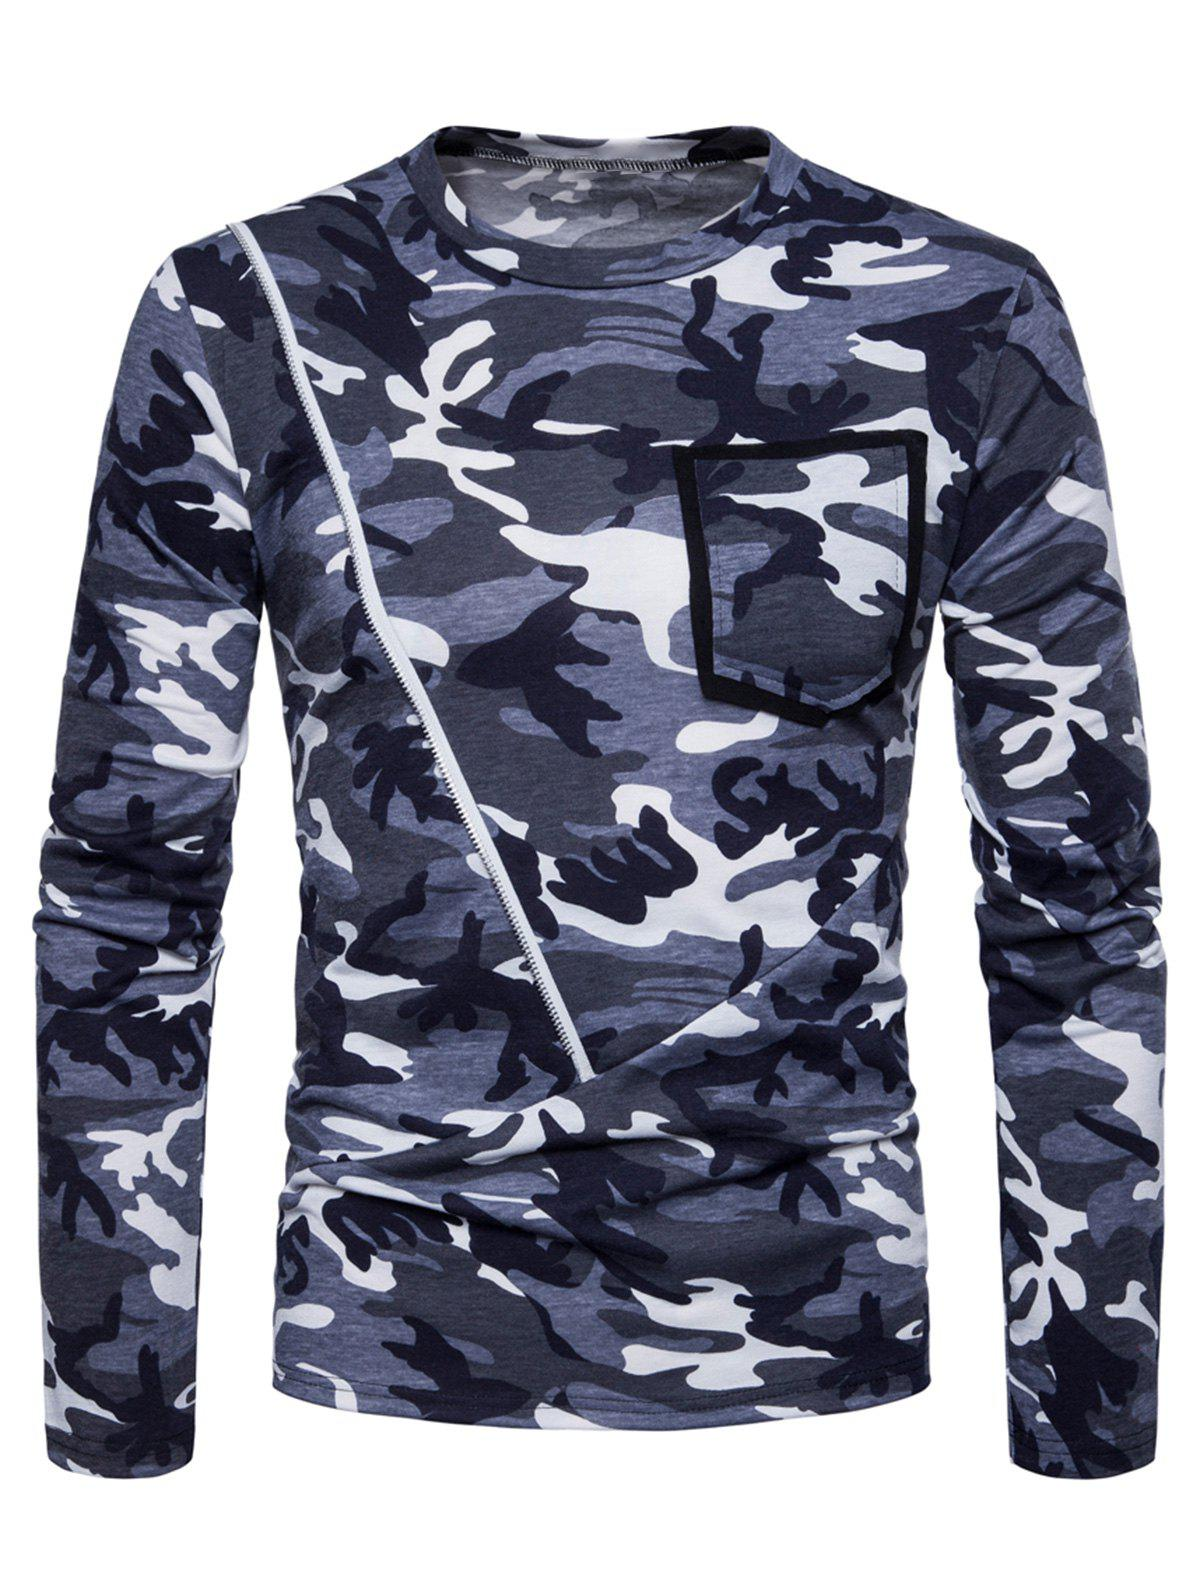 Zipper Pocket Design Camo Print Crew Neck T-shirt - DENIM DARK BLUE M